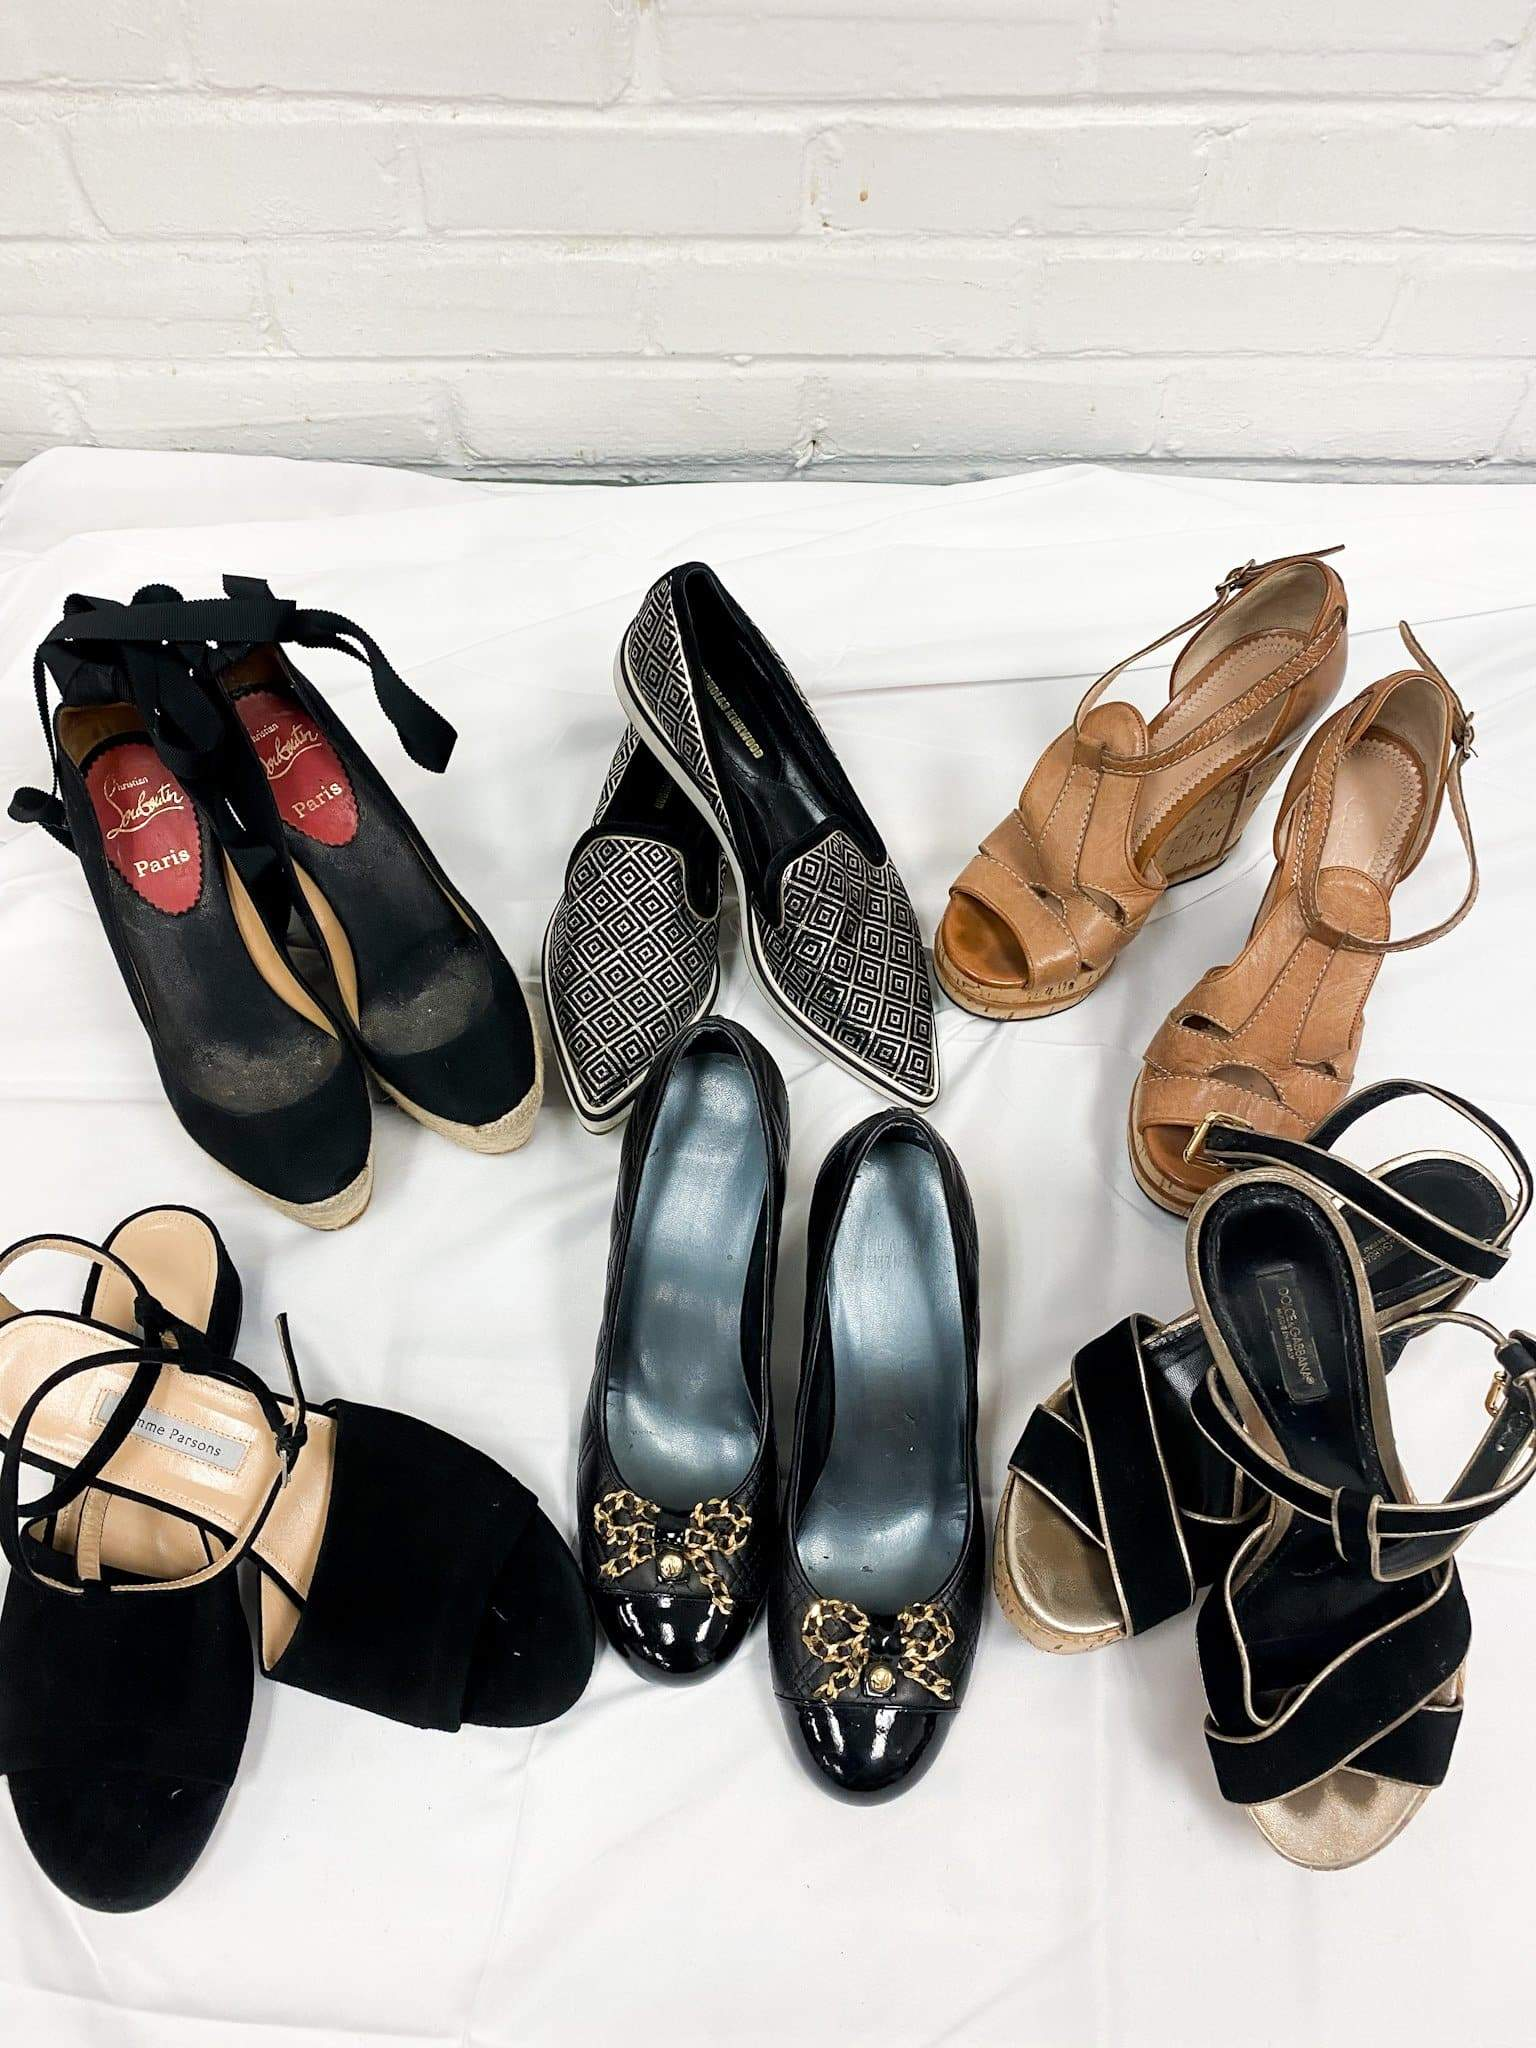 PREMIUM WOMEN'S SHOES | Preloved | 5 ct - JOMAR WHOLESALE